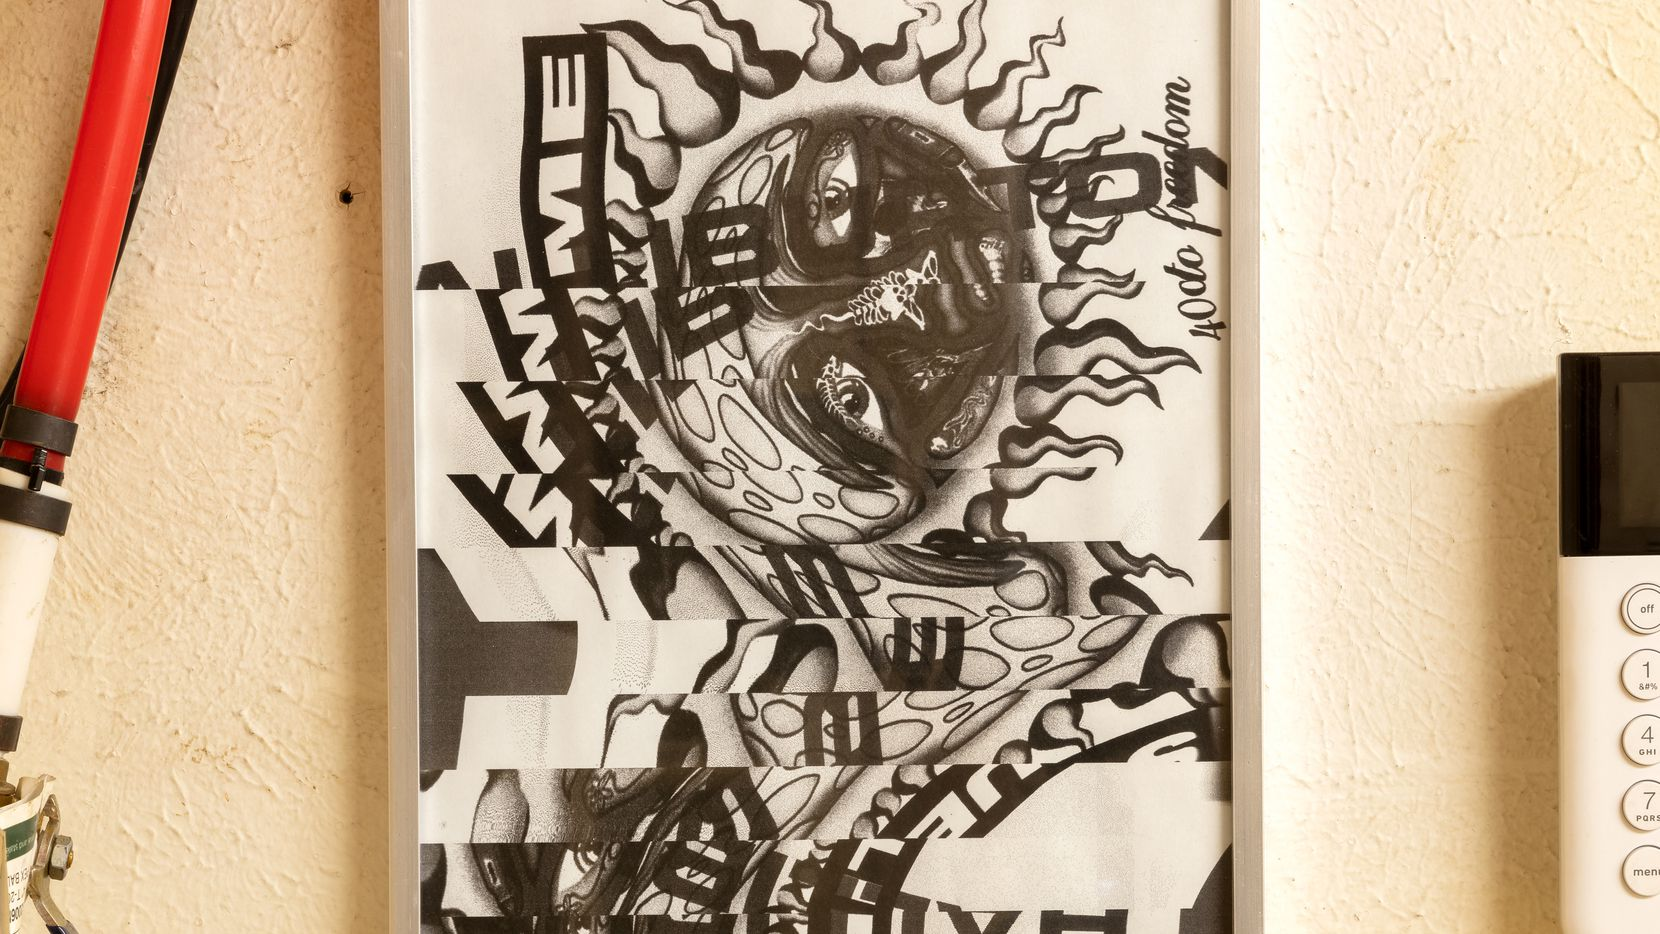 """Preston Douglas' 2021 piece """"The Rhythm of the Sun,"""" an inkjet print on cardstock in an aluminum frame, is among the artwork on display at PRP as part of the """"Preston Douglas and Mark Flood, Stretcher Barbeque"""" exhibition. It runs through July 31."""